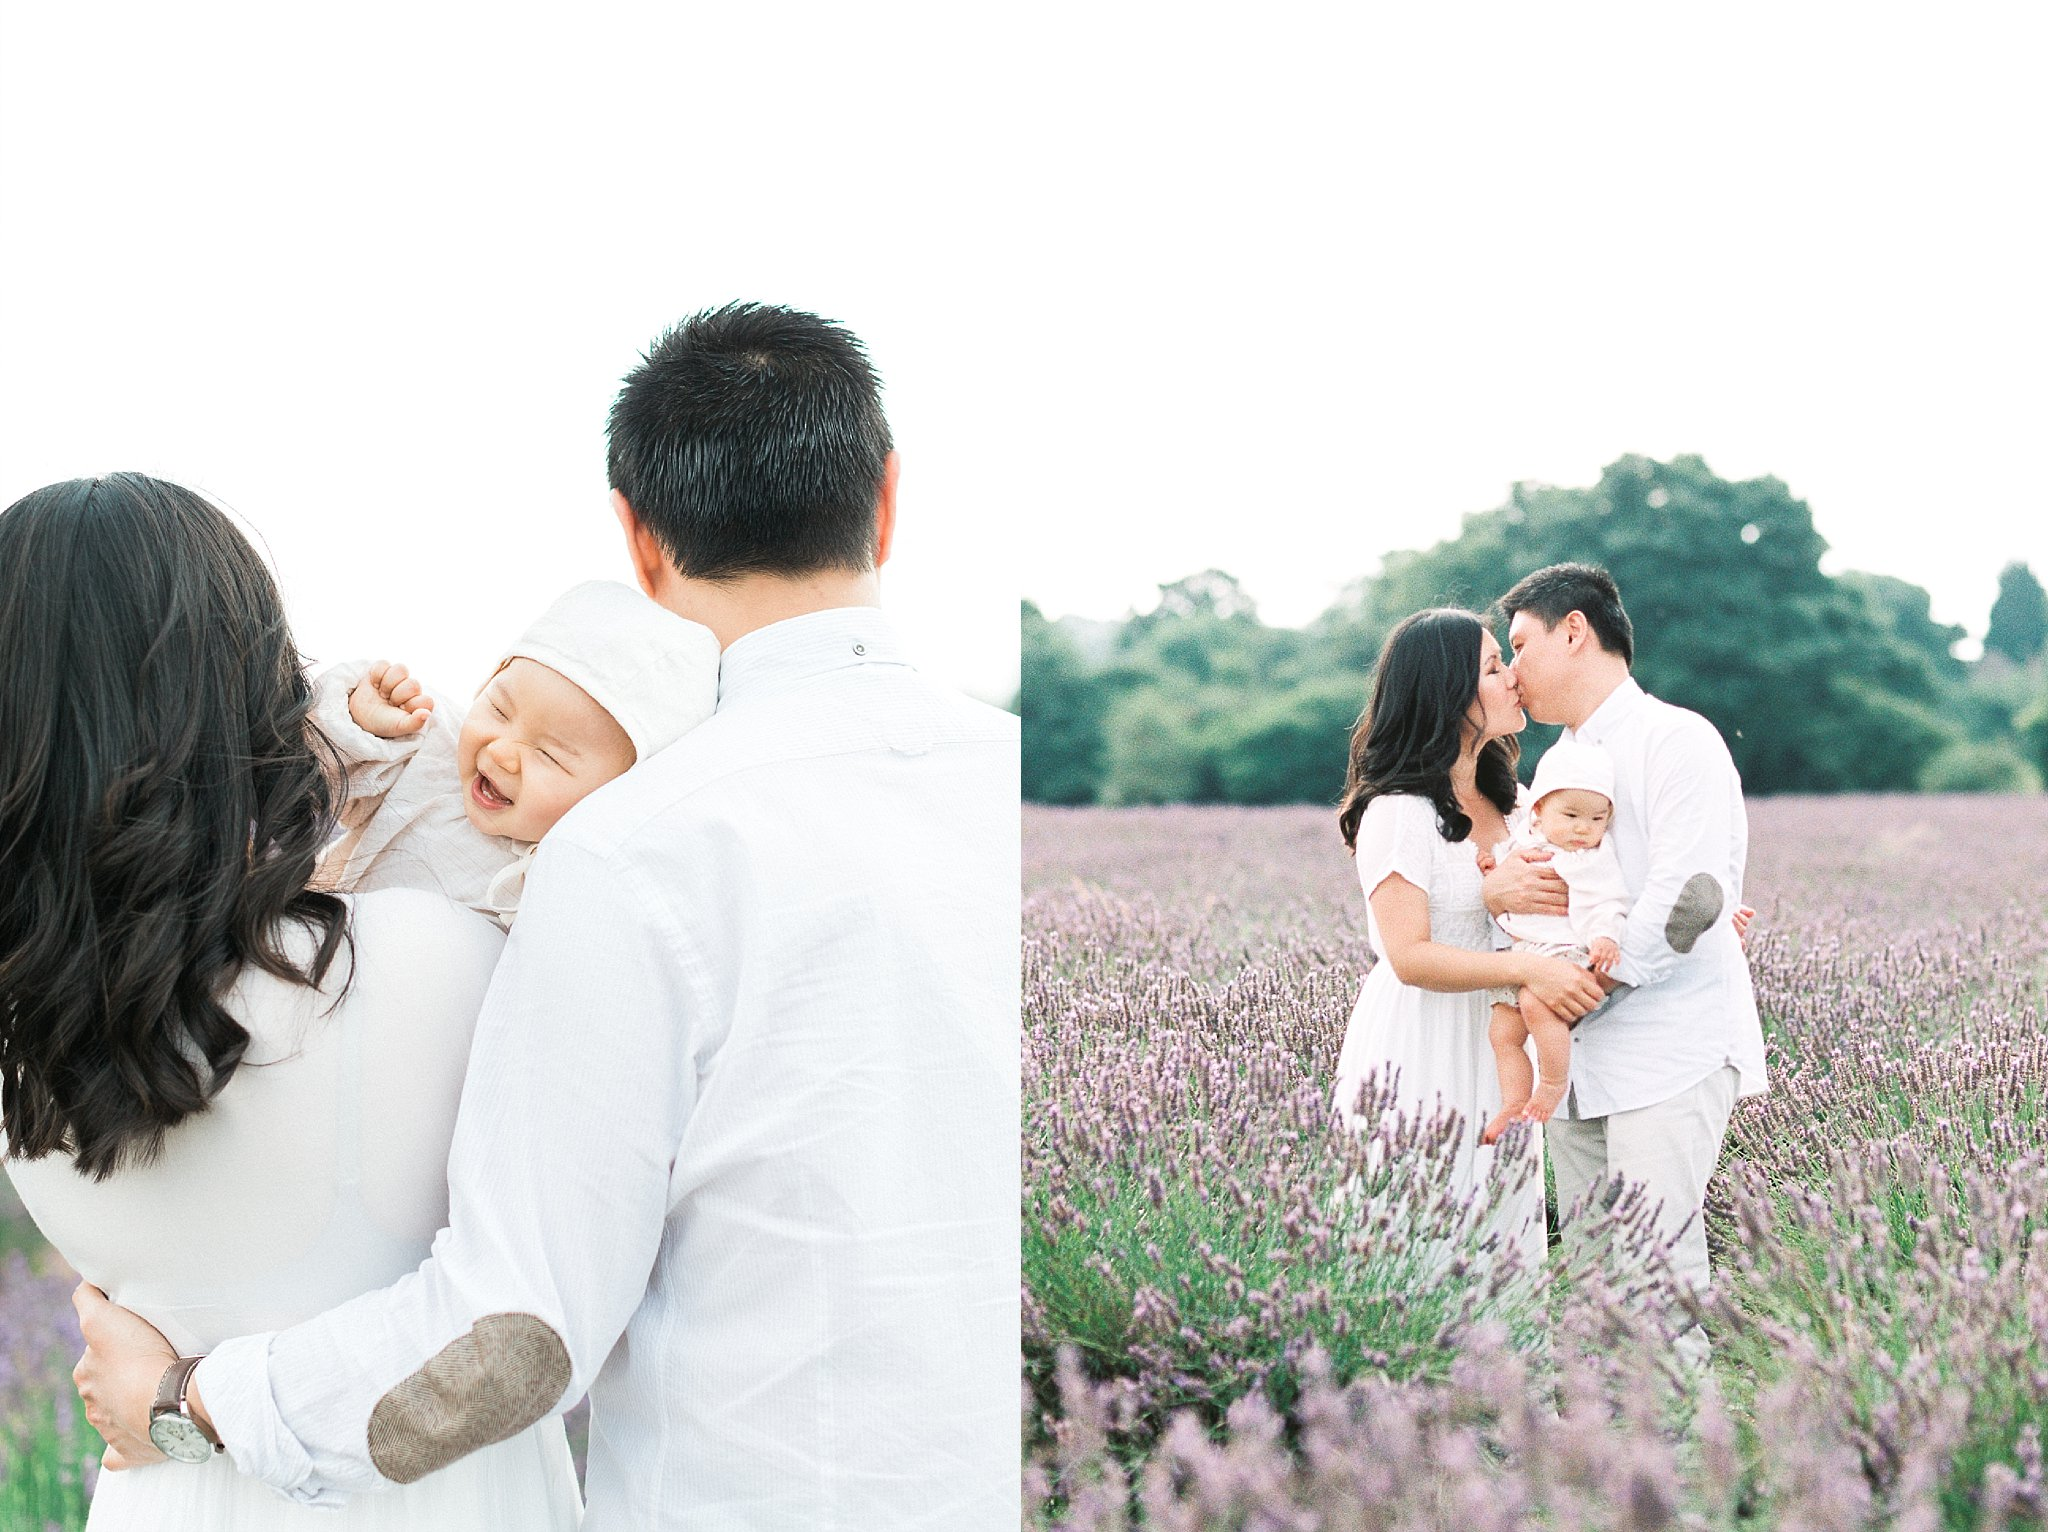 Destination Wedding Photographer,Fine Art Family Photographer,Fine Art Wedding Photographer,Kylee Yee,Kylee Yee Photography,Lavender Family Shoot,London Family Photographer,London Wedding Photographer,Mayfield Lavender Farm,Wedding and Portrait Photographer,